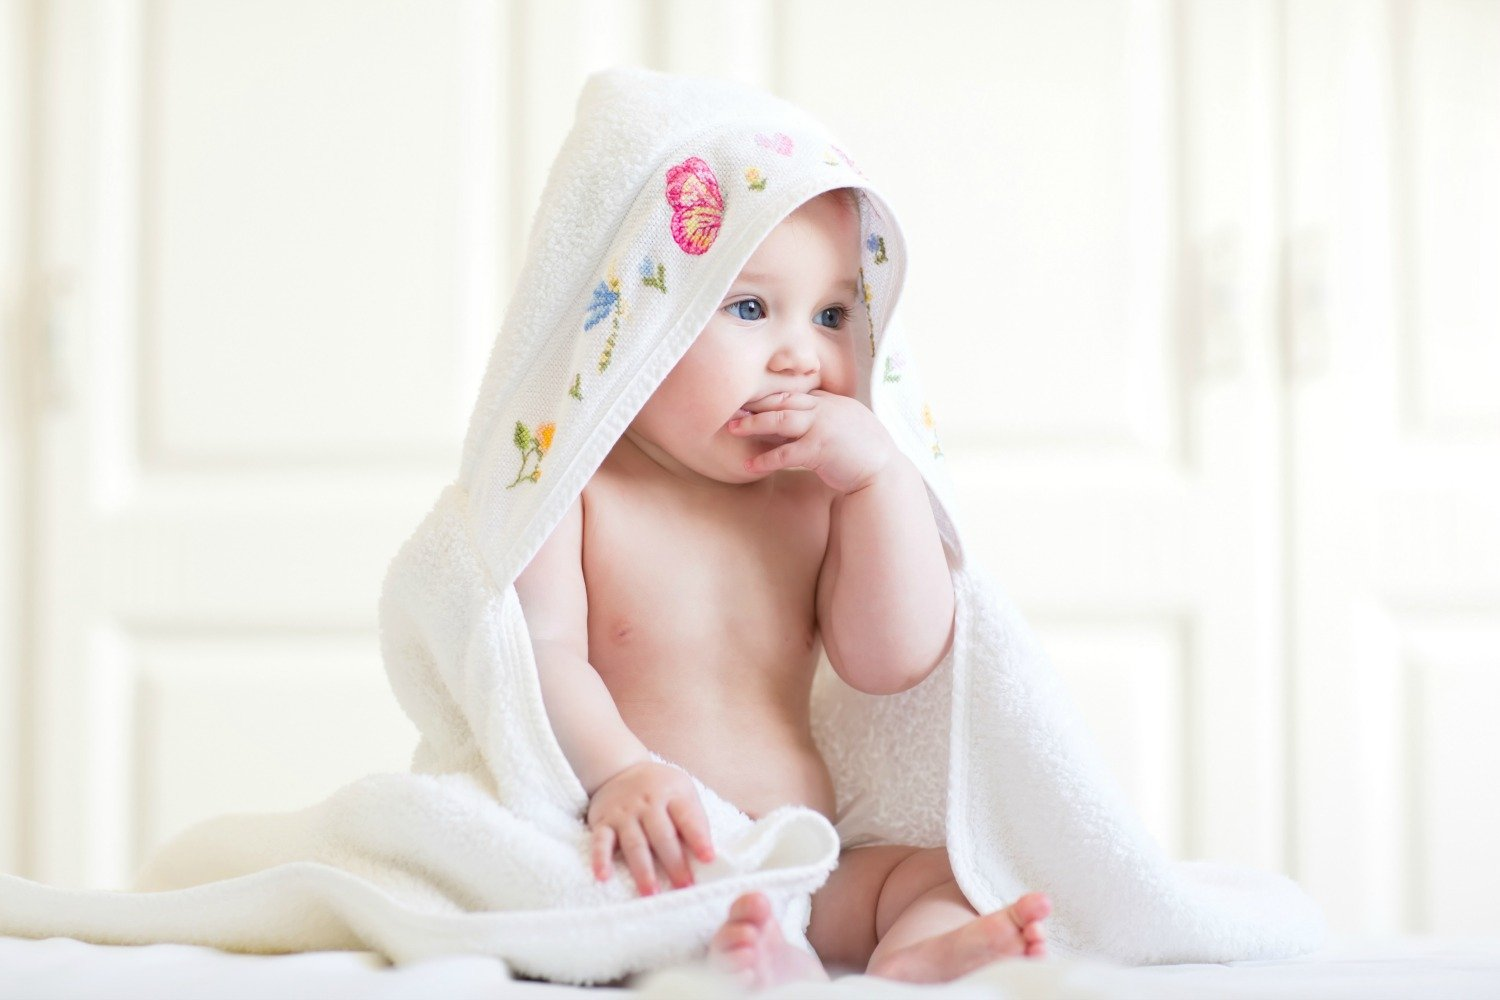 baby wearing a hooded towel - Good Little Sleeperzzz